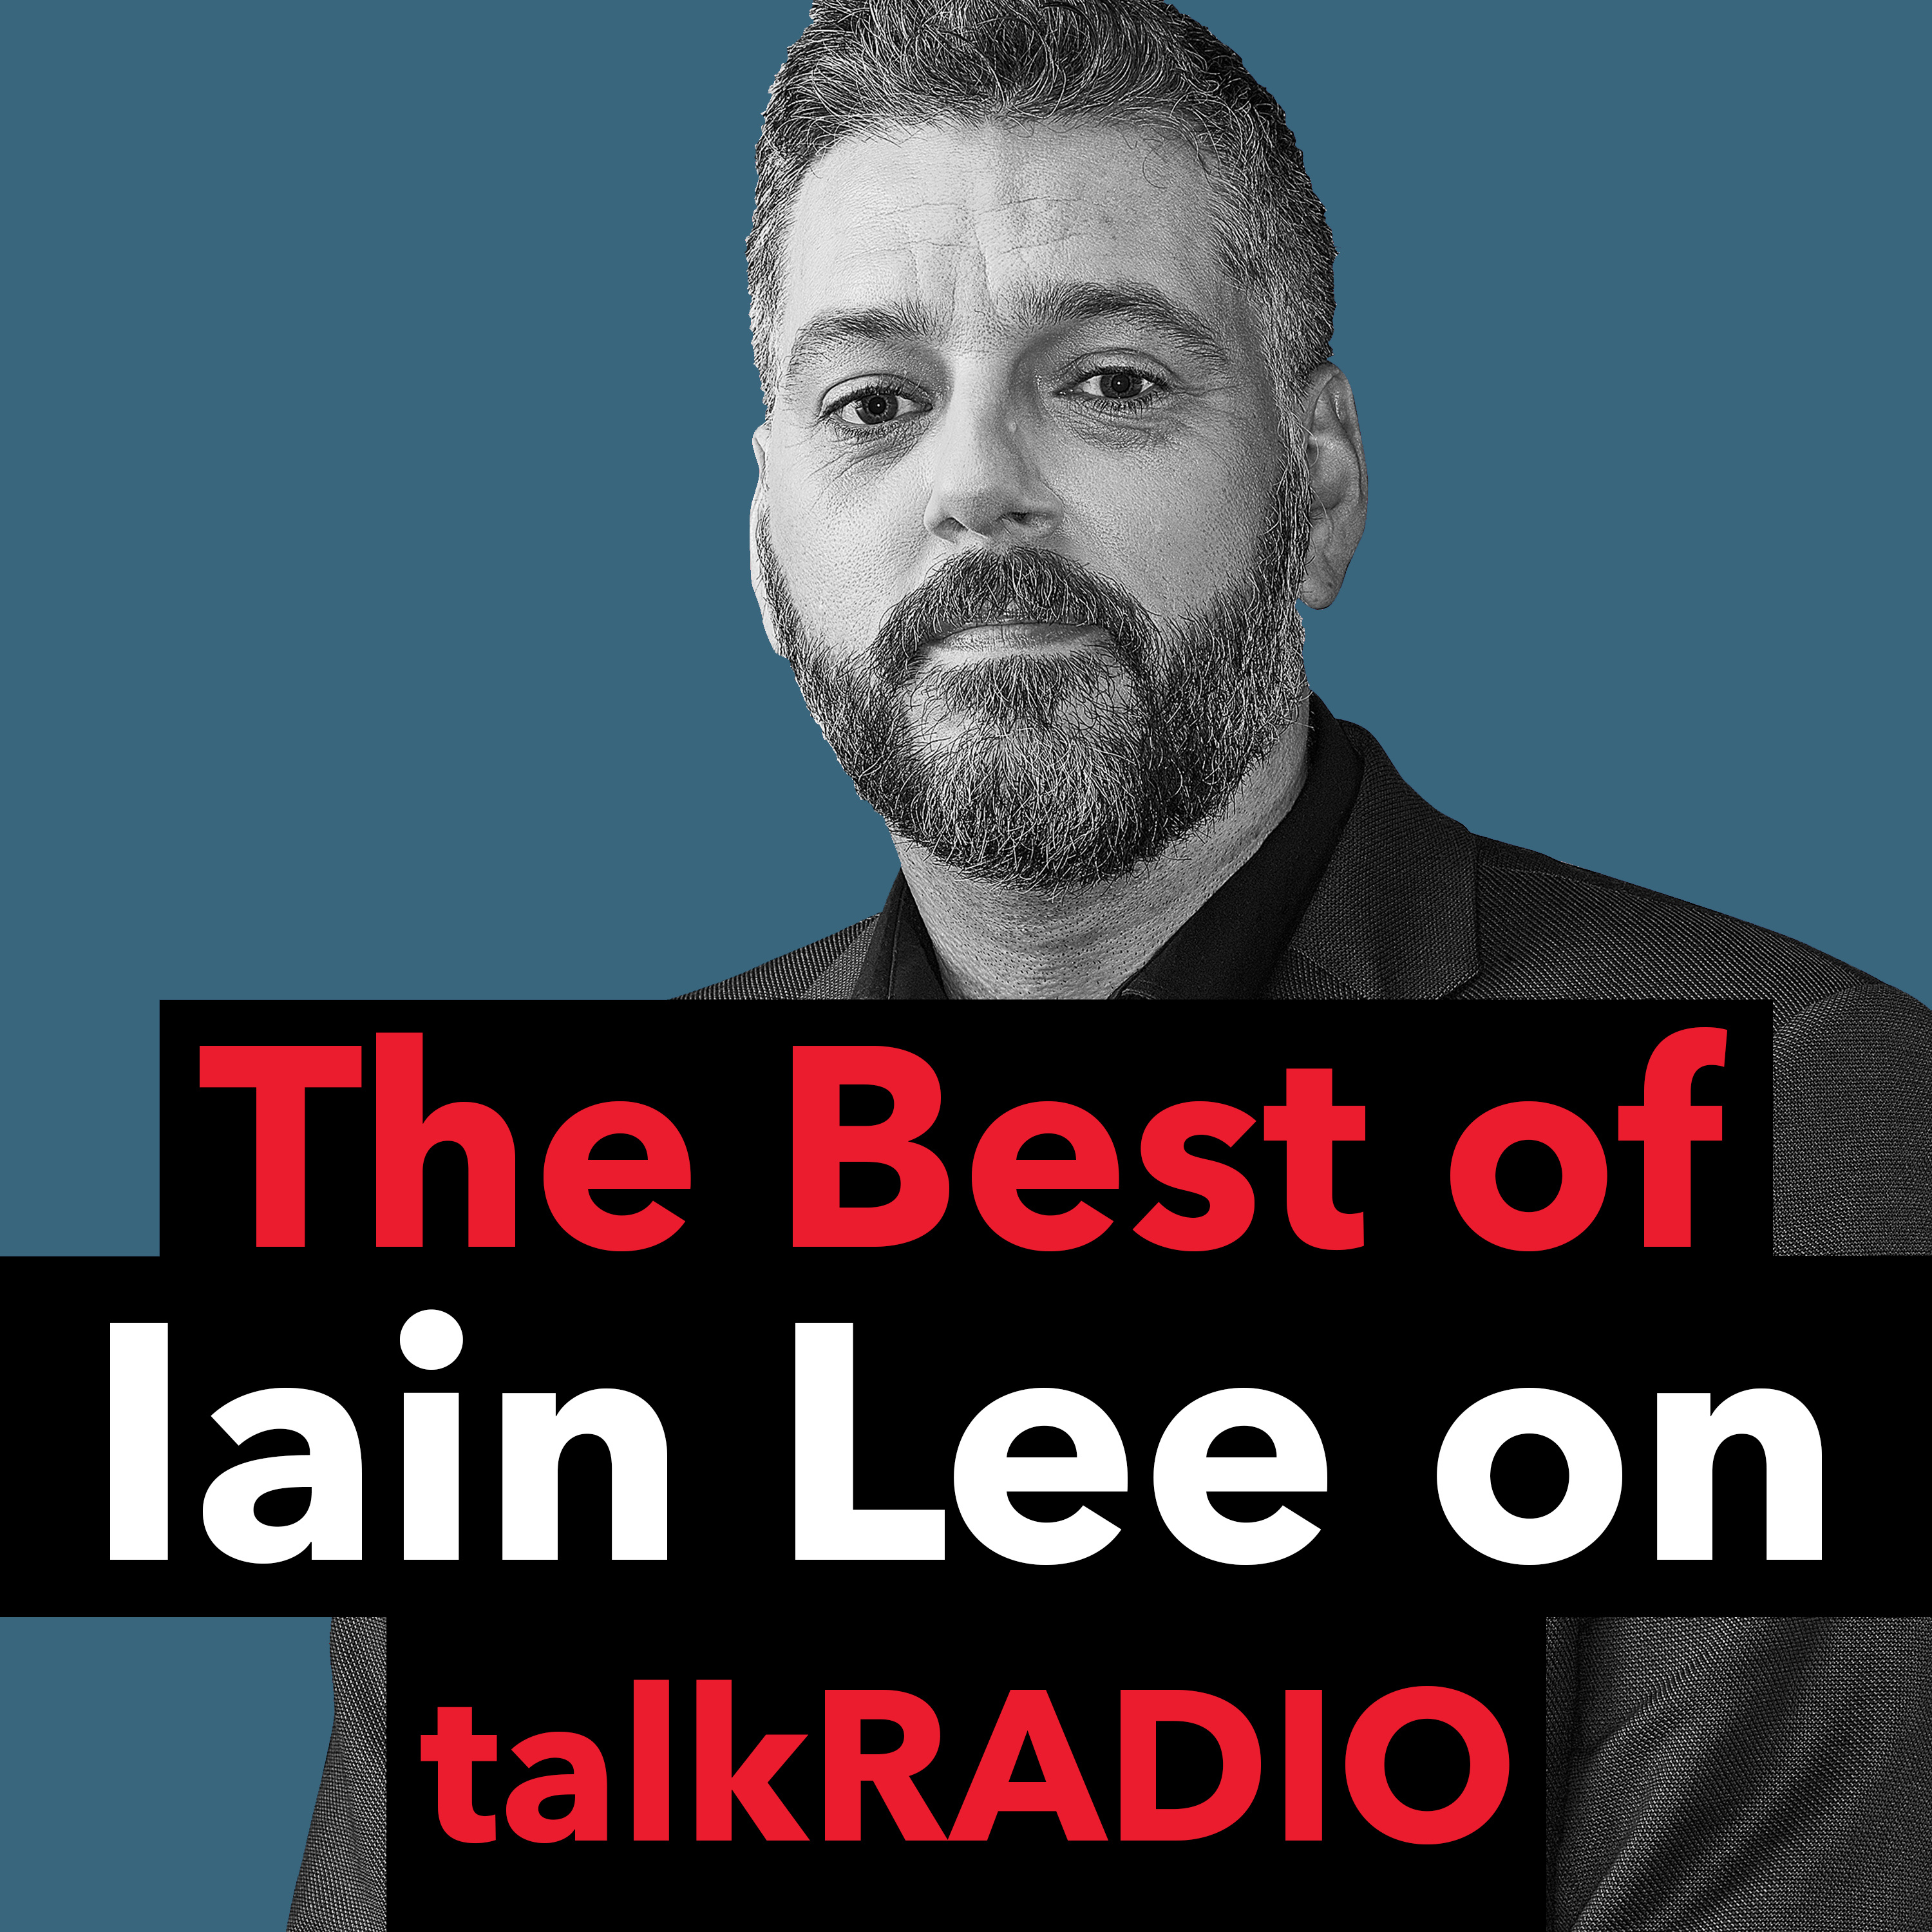 The Best of Iain Lee - Saturday 7th December 2019